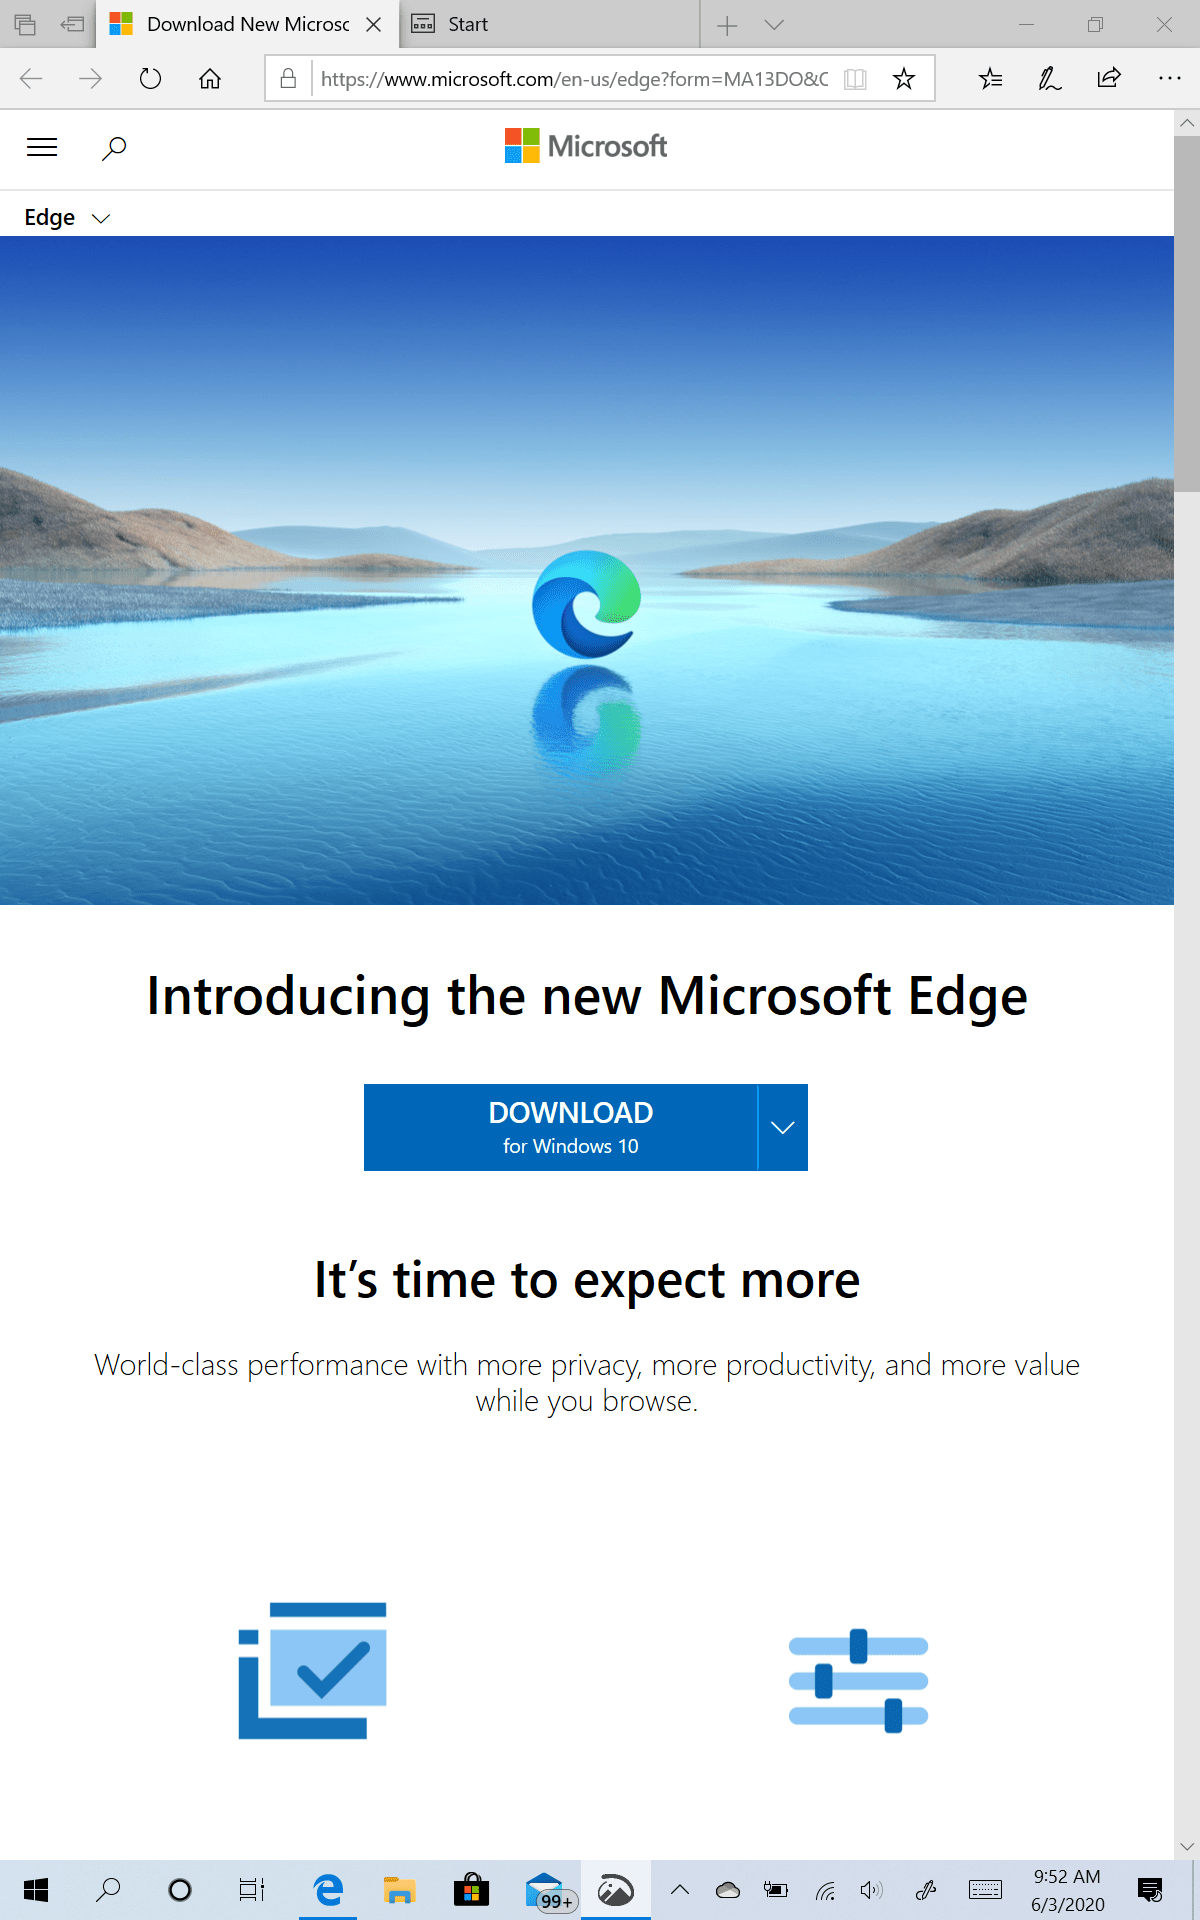 New Edge Rollout on Windows 10 (Version 1909)